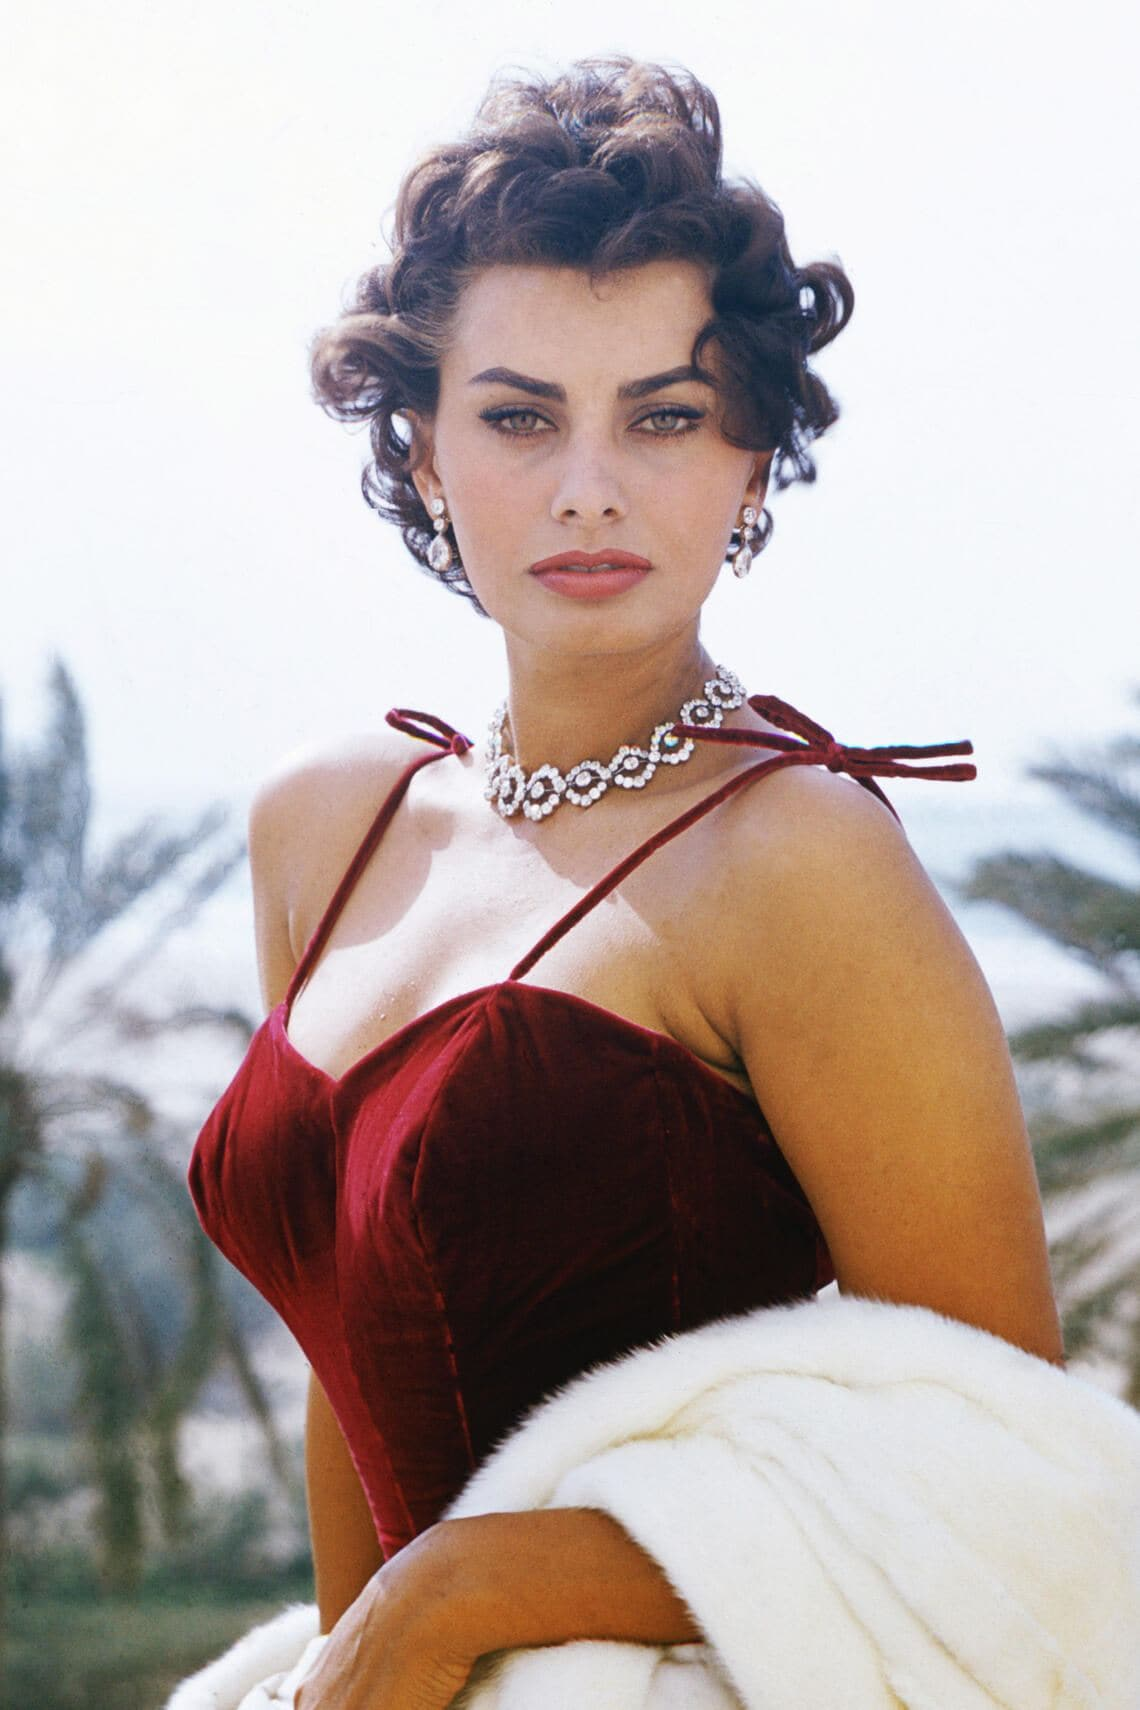 Italian actress Sophia Loren, circa 1965. (Photo by Silver Screen Collection/Hulton Archive/Getty Images)